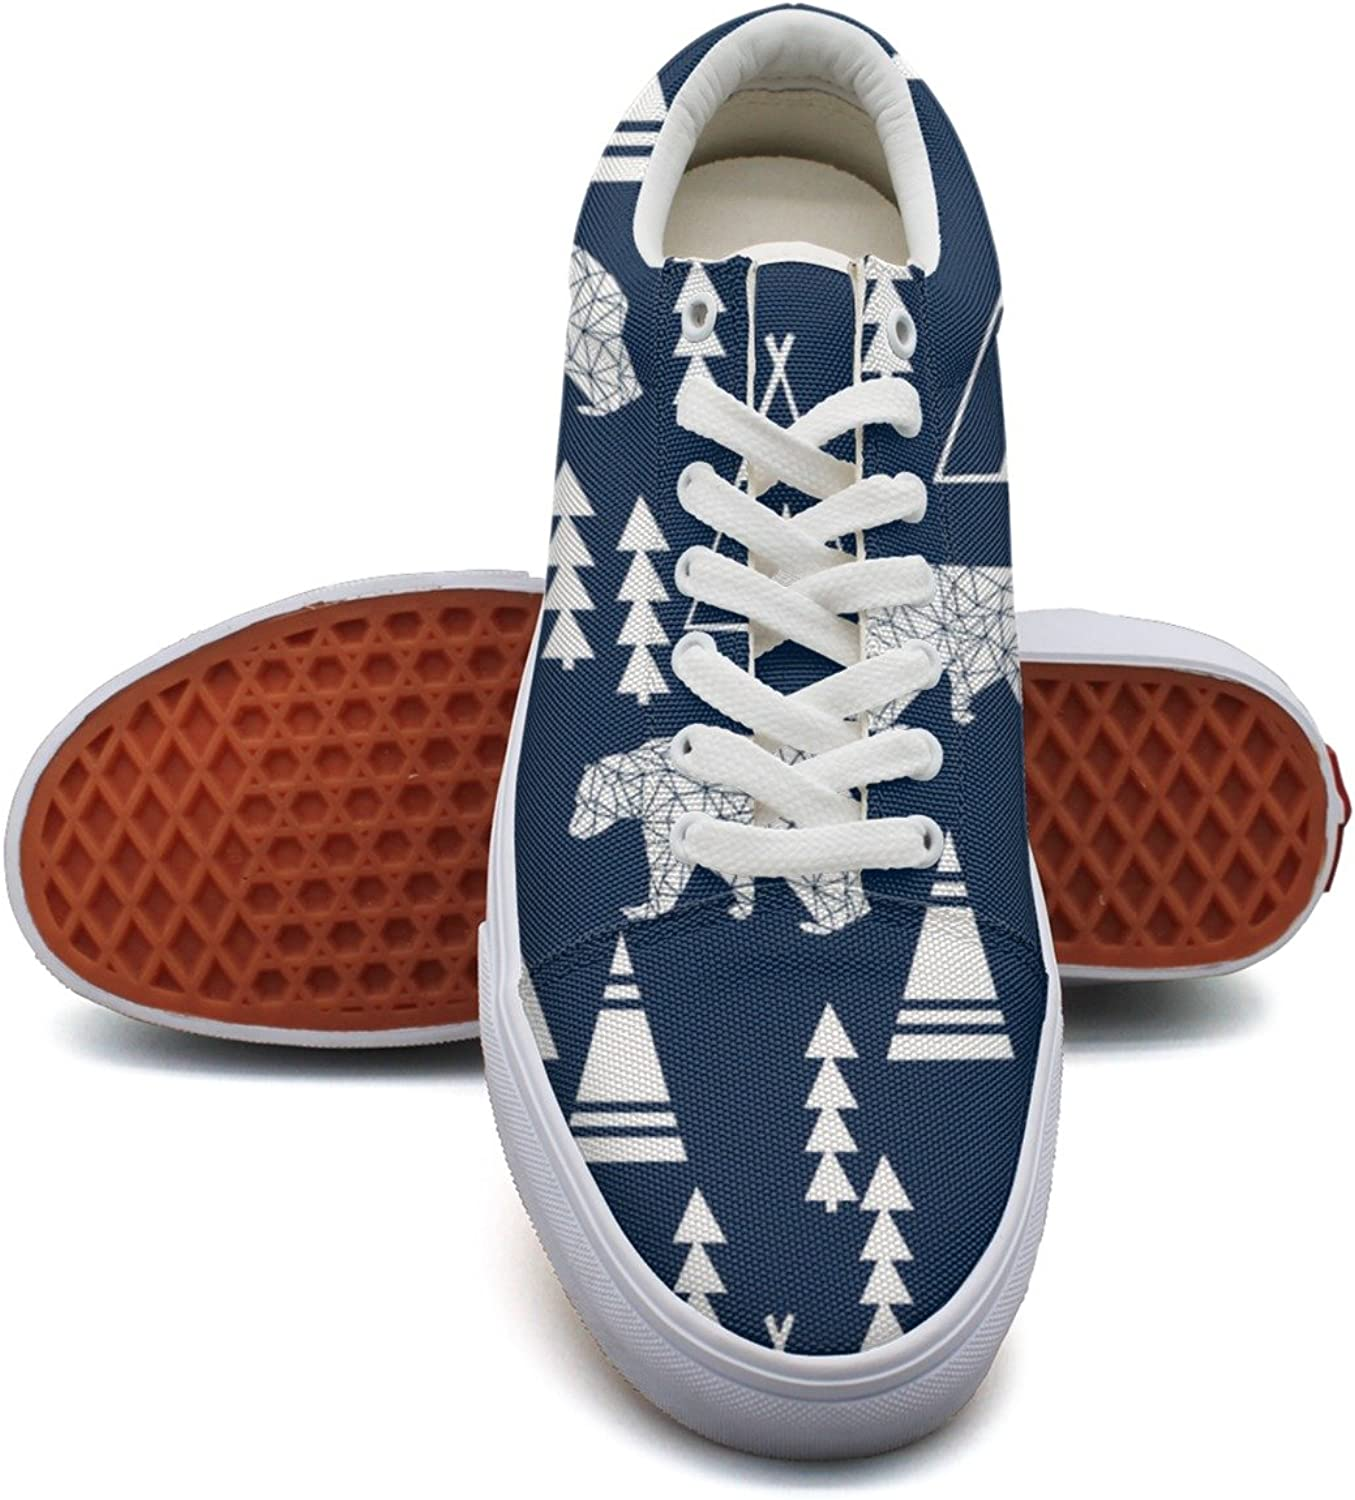 Teepee Bear Forest Fashion Canvas Sneaker shoes For Womns 3D Printed Low Top Canvas shoes